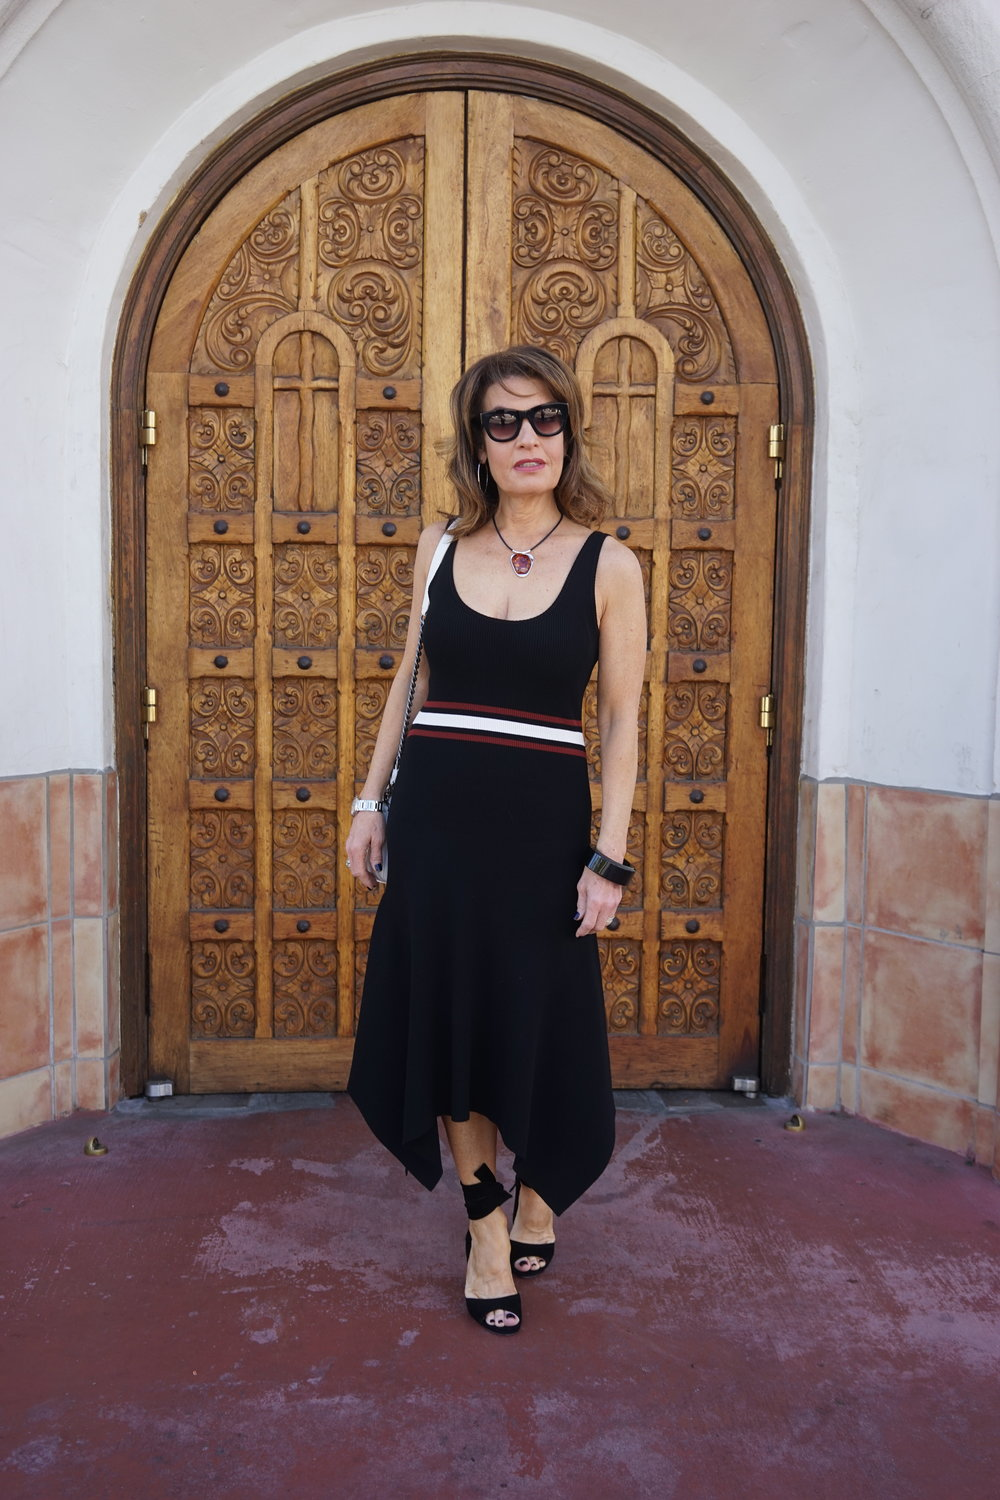 ALC dress    on sale here   , Gianvito Rossi sandals    similar and on sale here   , Chanel handbag    similar for less here   , Lanvin bangle    similar for much less here   ,   Celine sunglasses